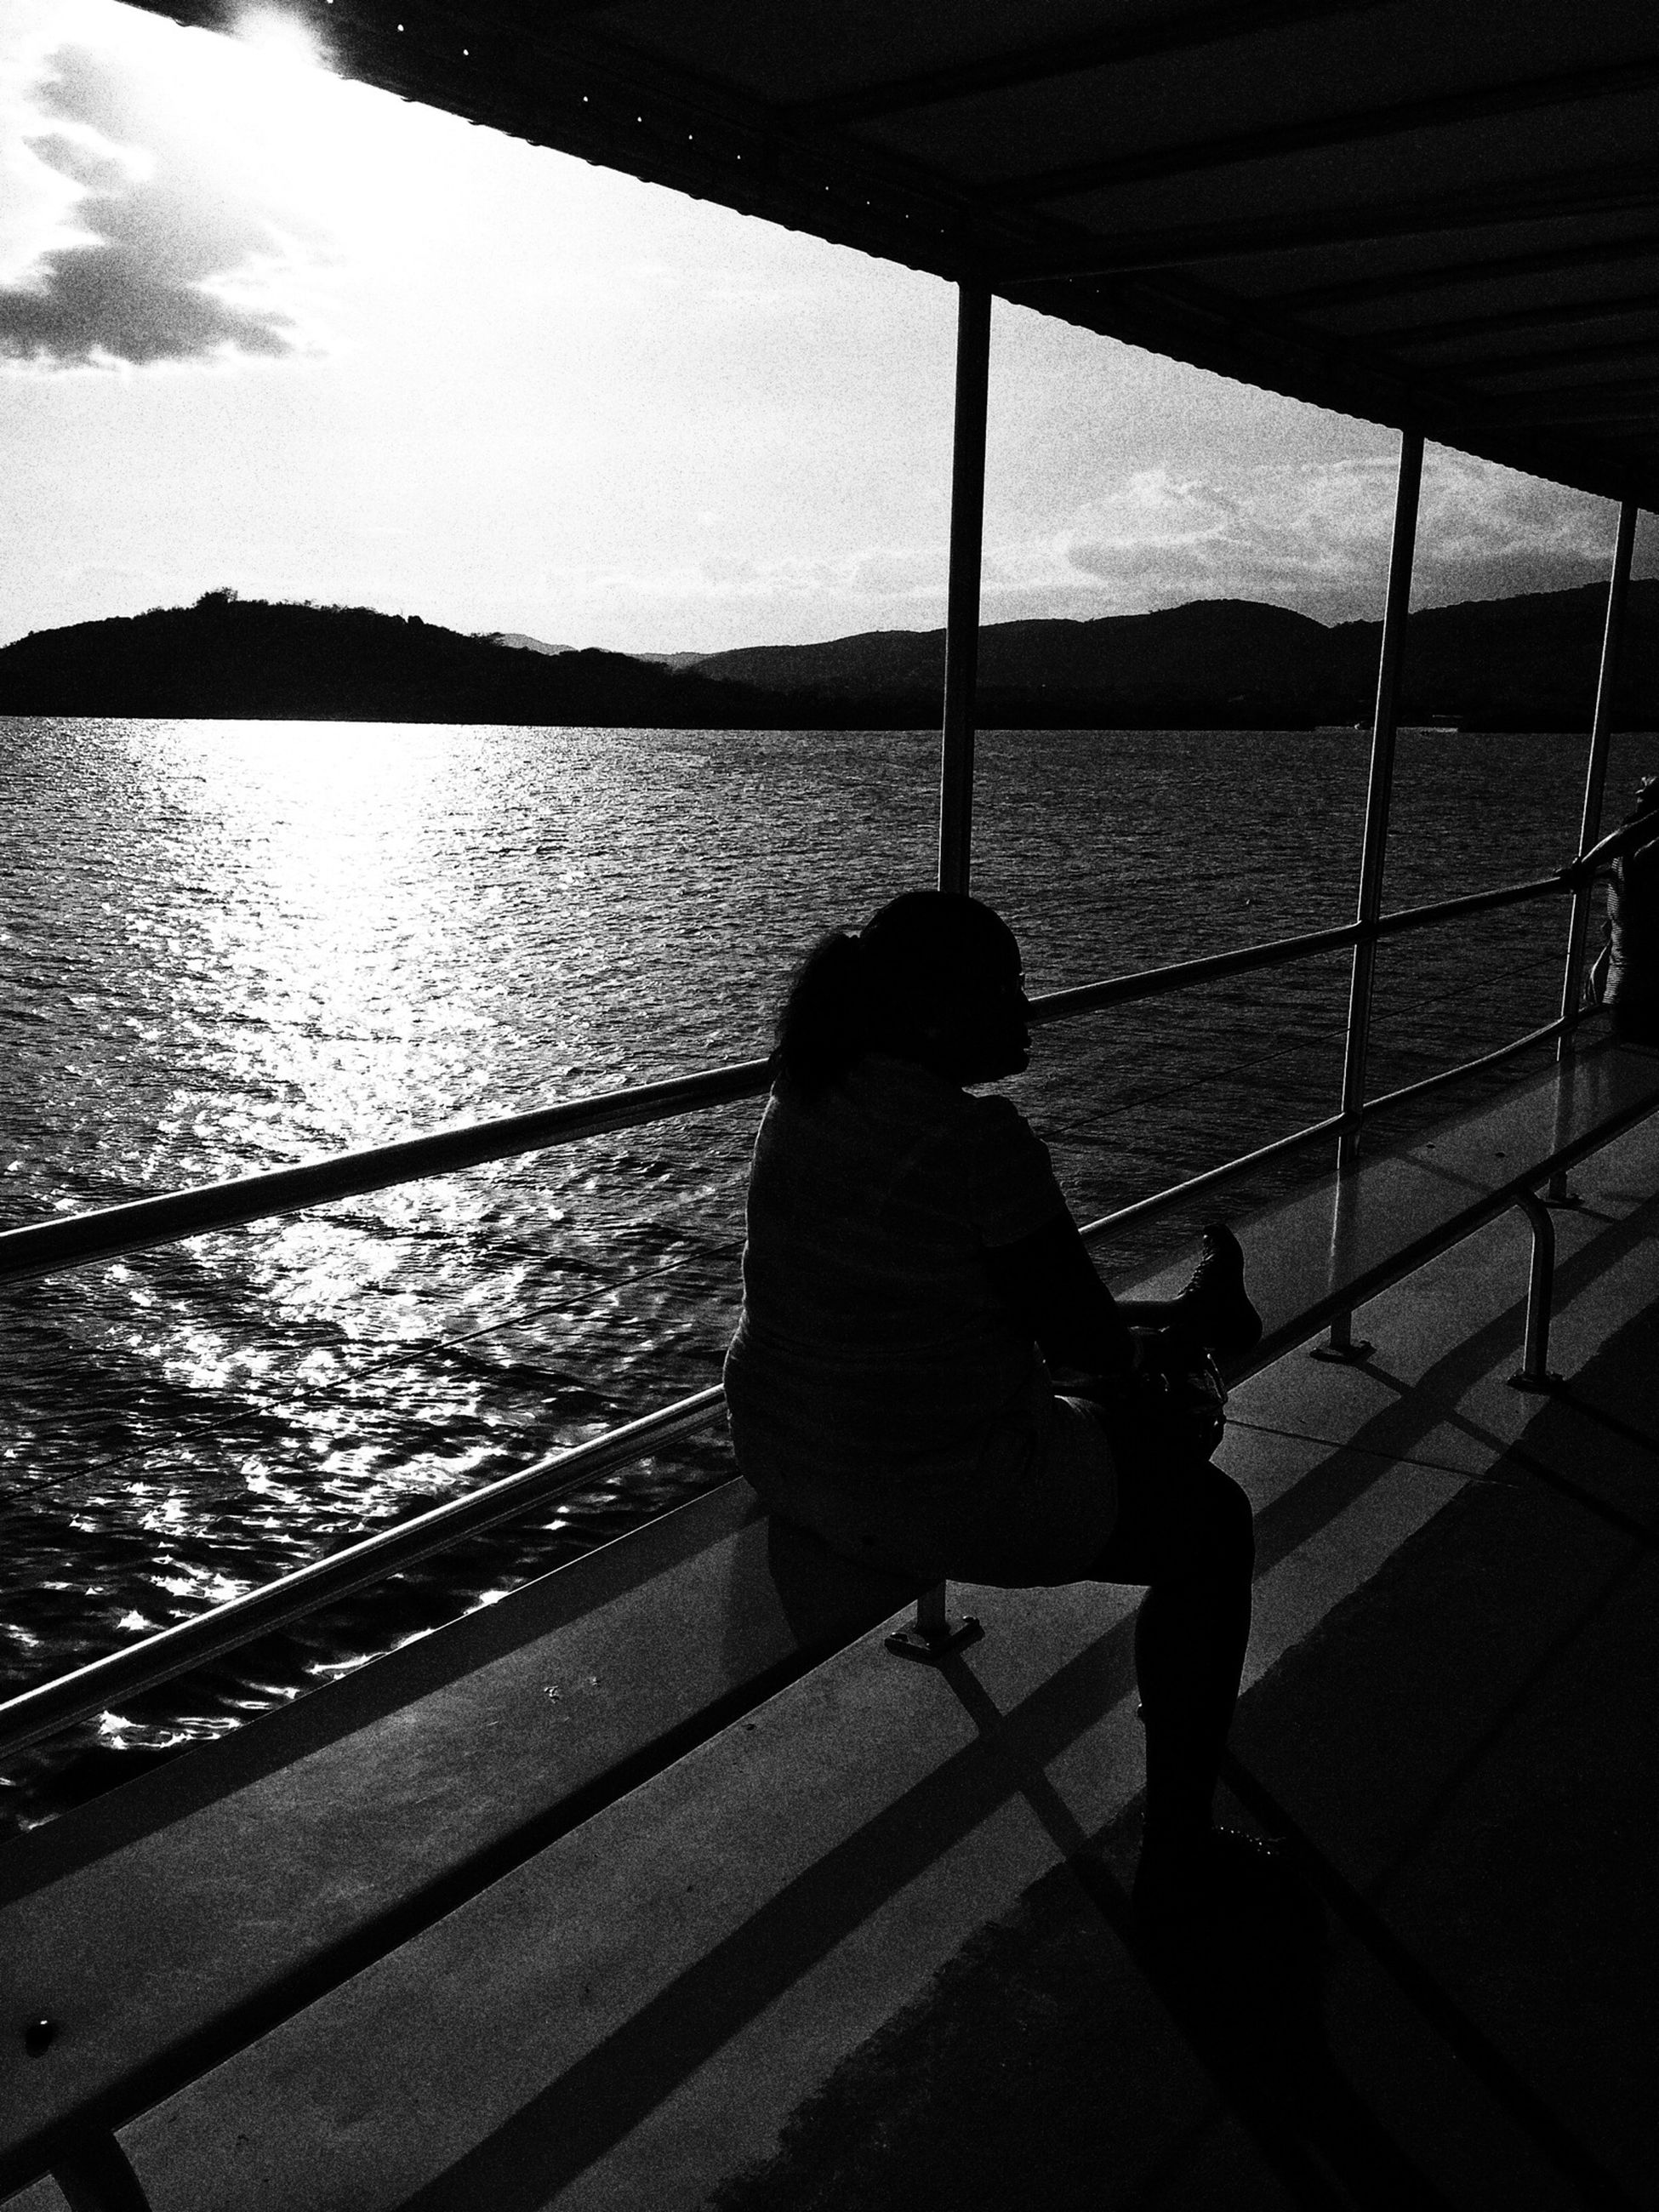 rear view, water, lifestyles, leisure activity, silhouette, men, standing, full length, person, reflection, lake, shadow, river, railing, walking, sunlight, sky, outdoors